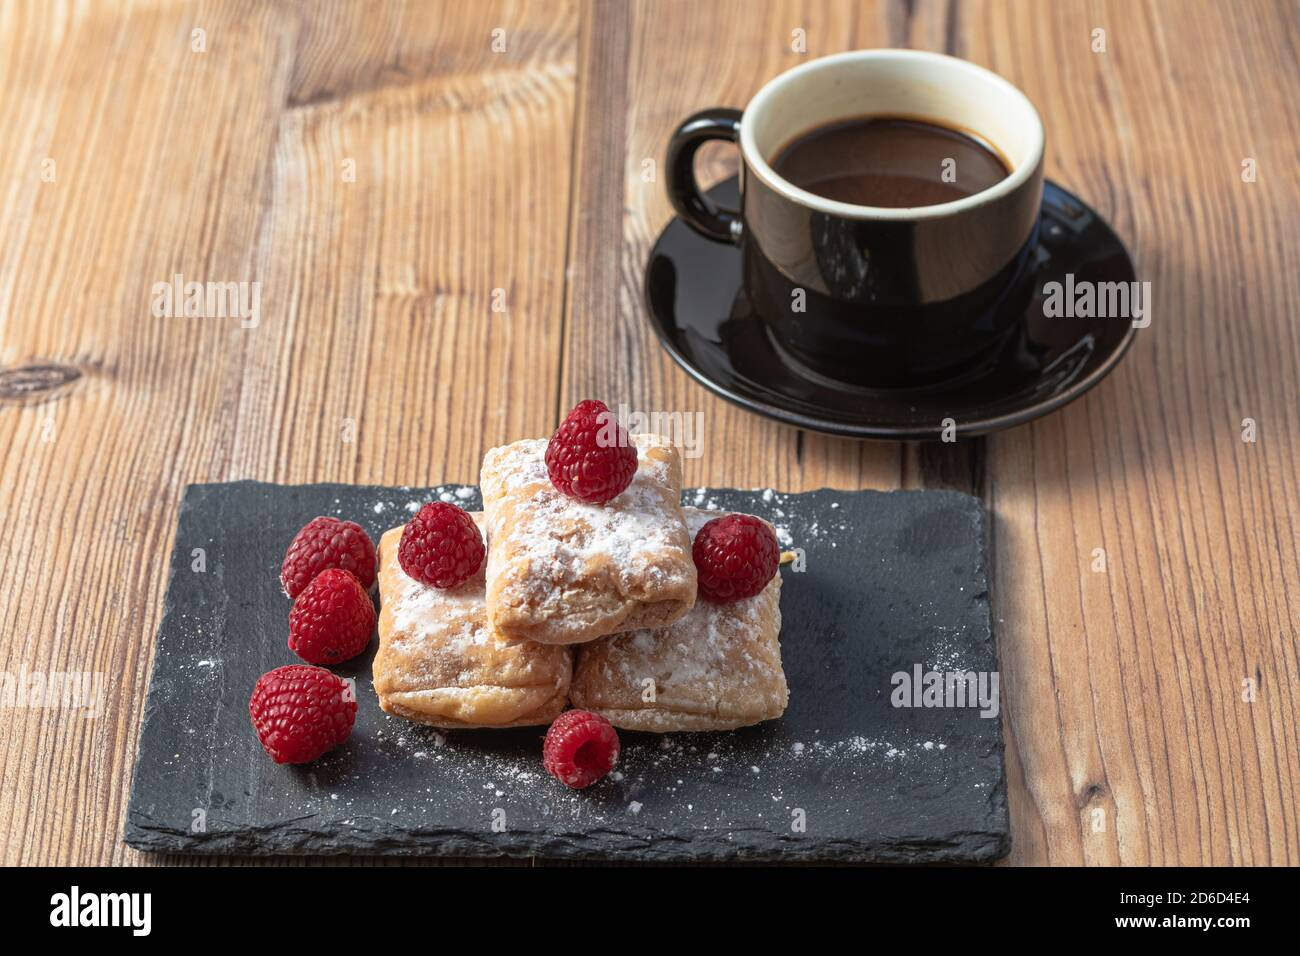 Page 20   Spanish Breakfast With Coffee High Resolution Stock ...